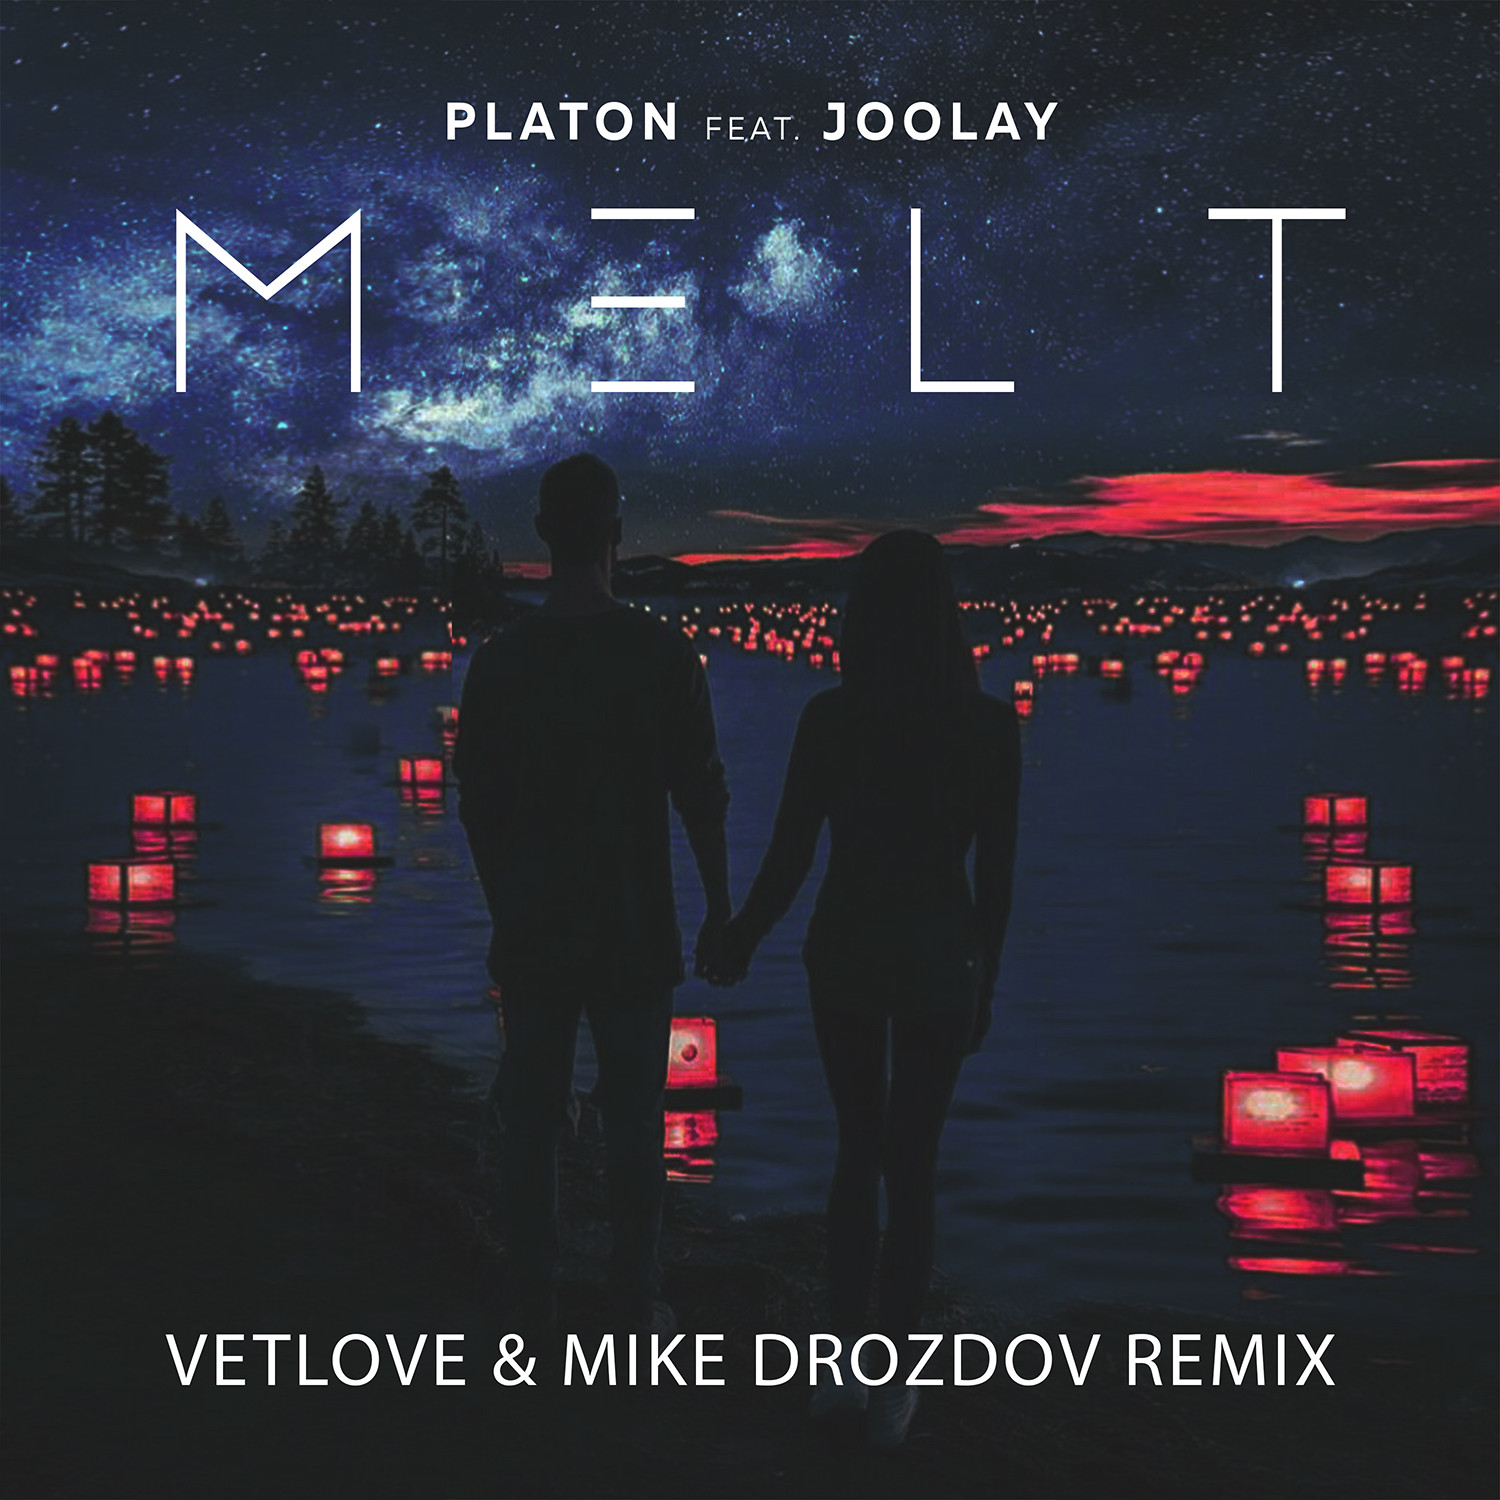 PLATON FEAT JOOLAY LAST RADIO EDIT СКАЧАТЬ БЕСПЛАТНО